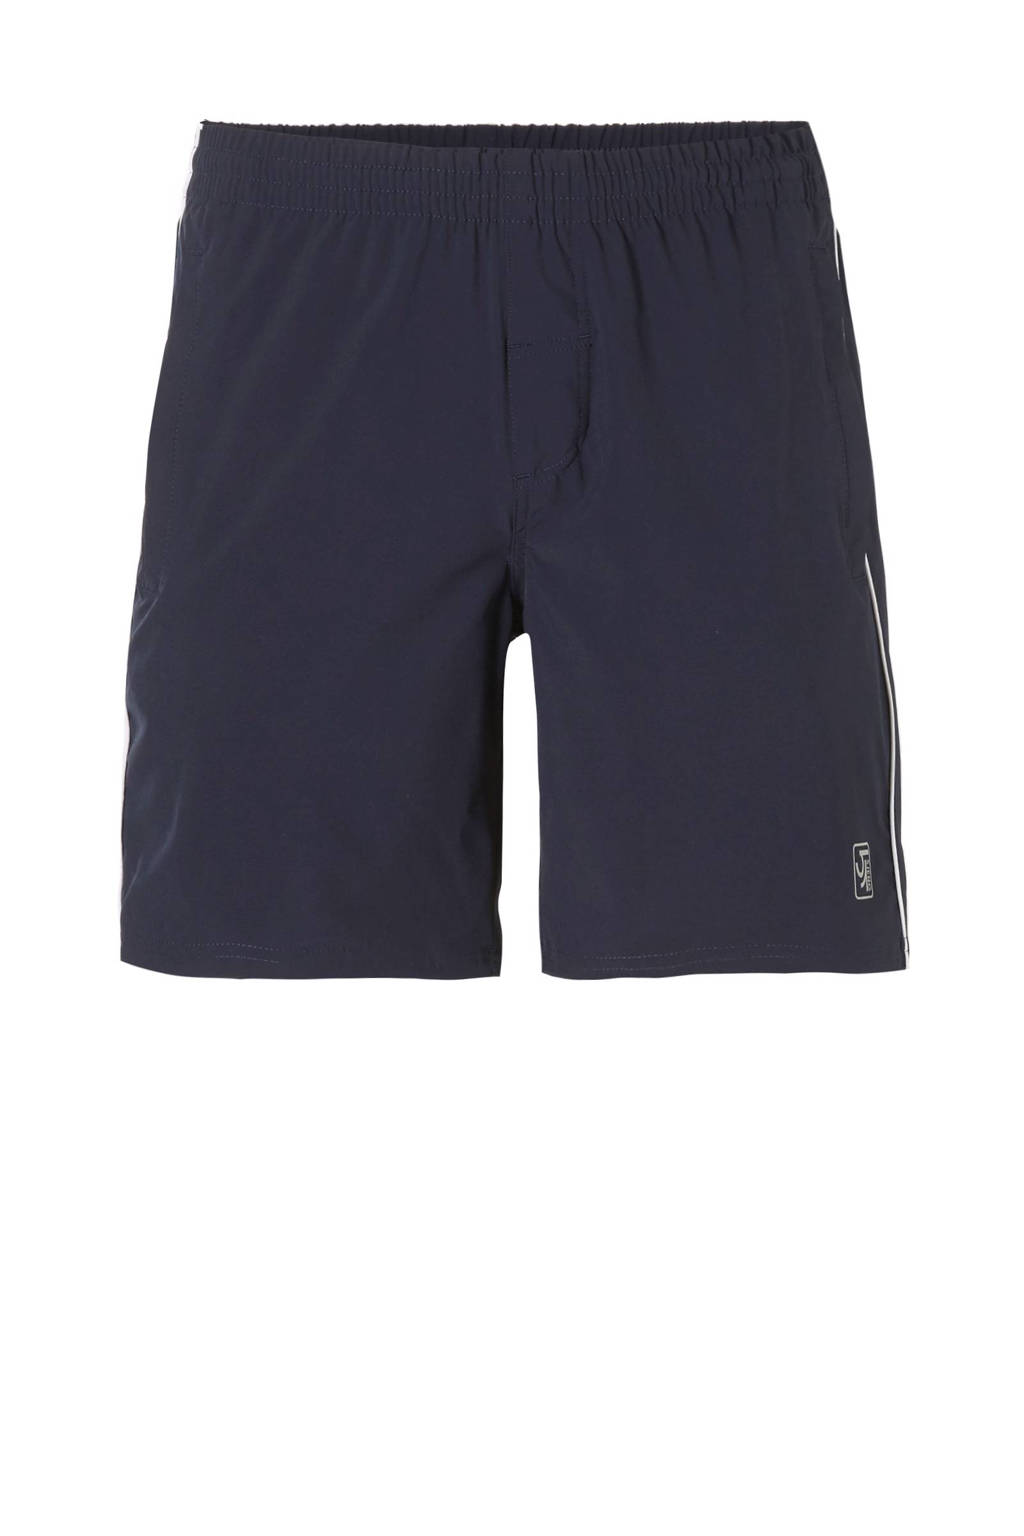 Sjeng Sports   short, Marine